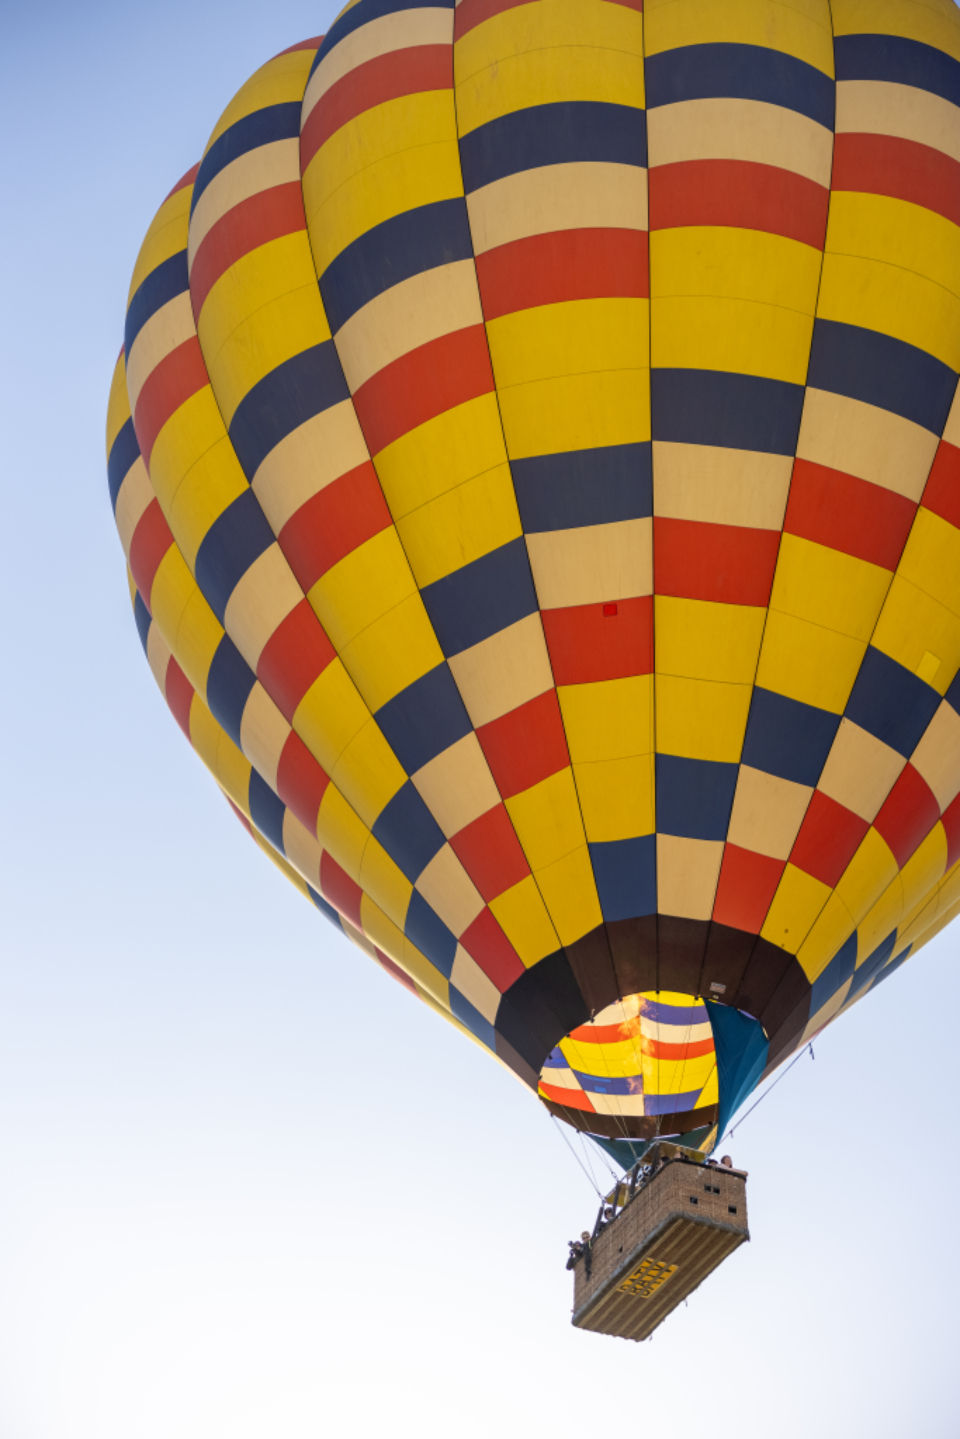 Free stock photo of hot air